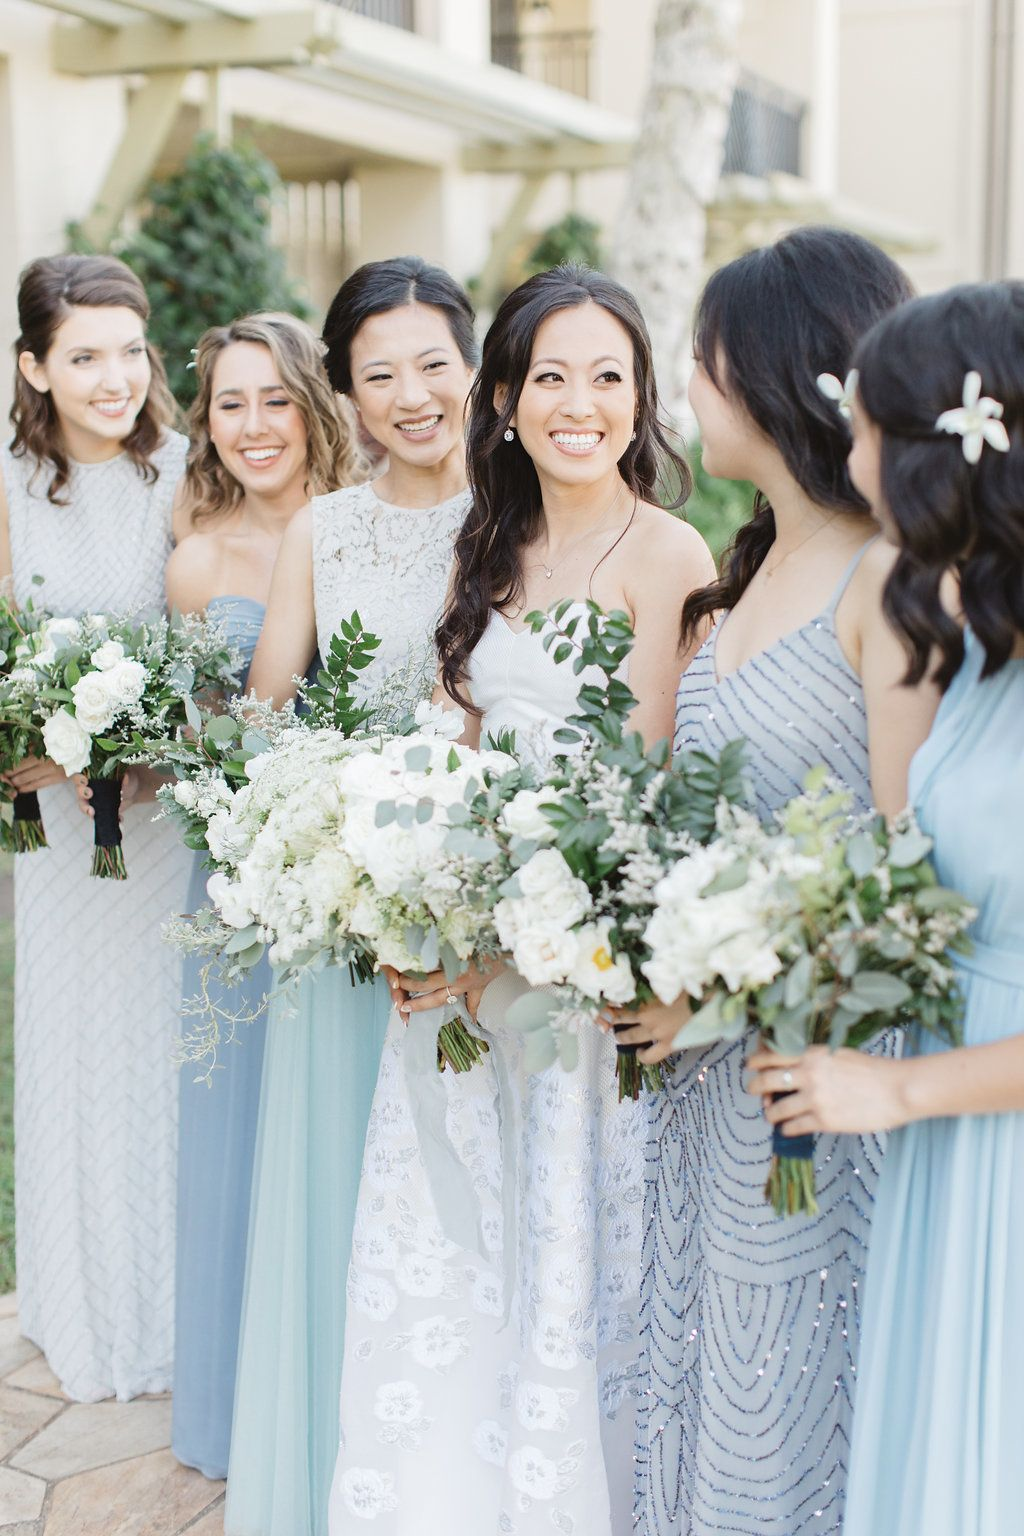 From Beautiful Blues To Sweet Slushies This Hawaiian Wedding Gets It Oh So Right Light Blue Bridesmaid Dresses Bridesmaid Colors Mismatched Bridesmaid Dresses Blue